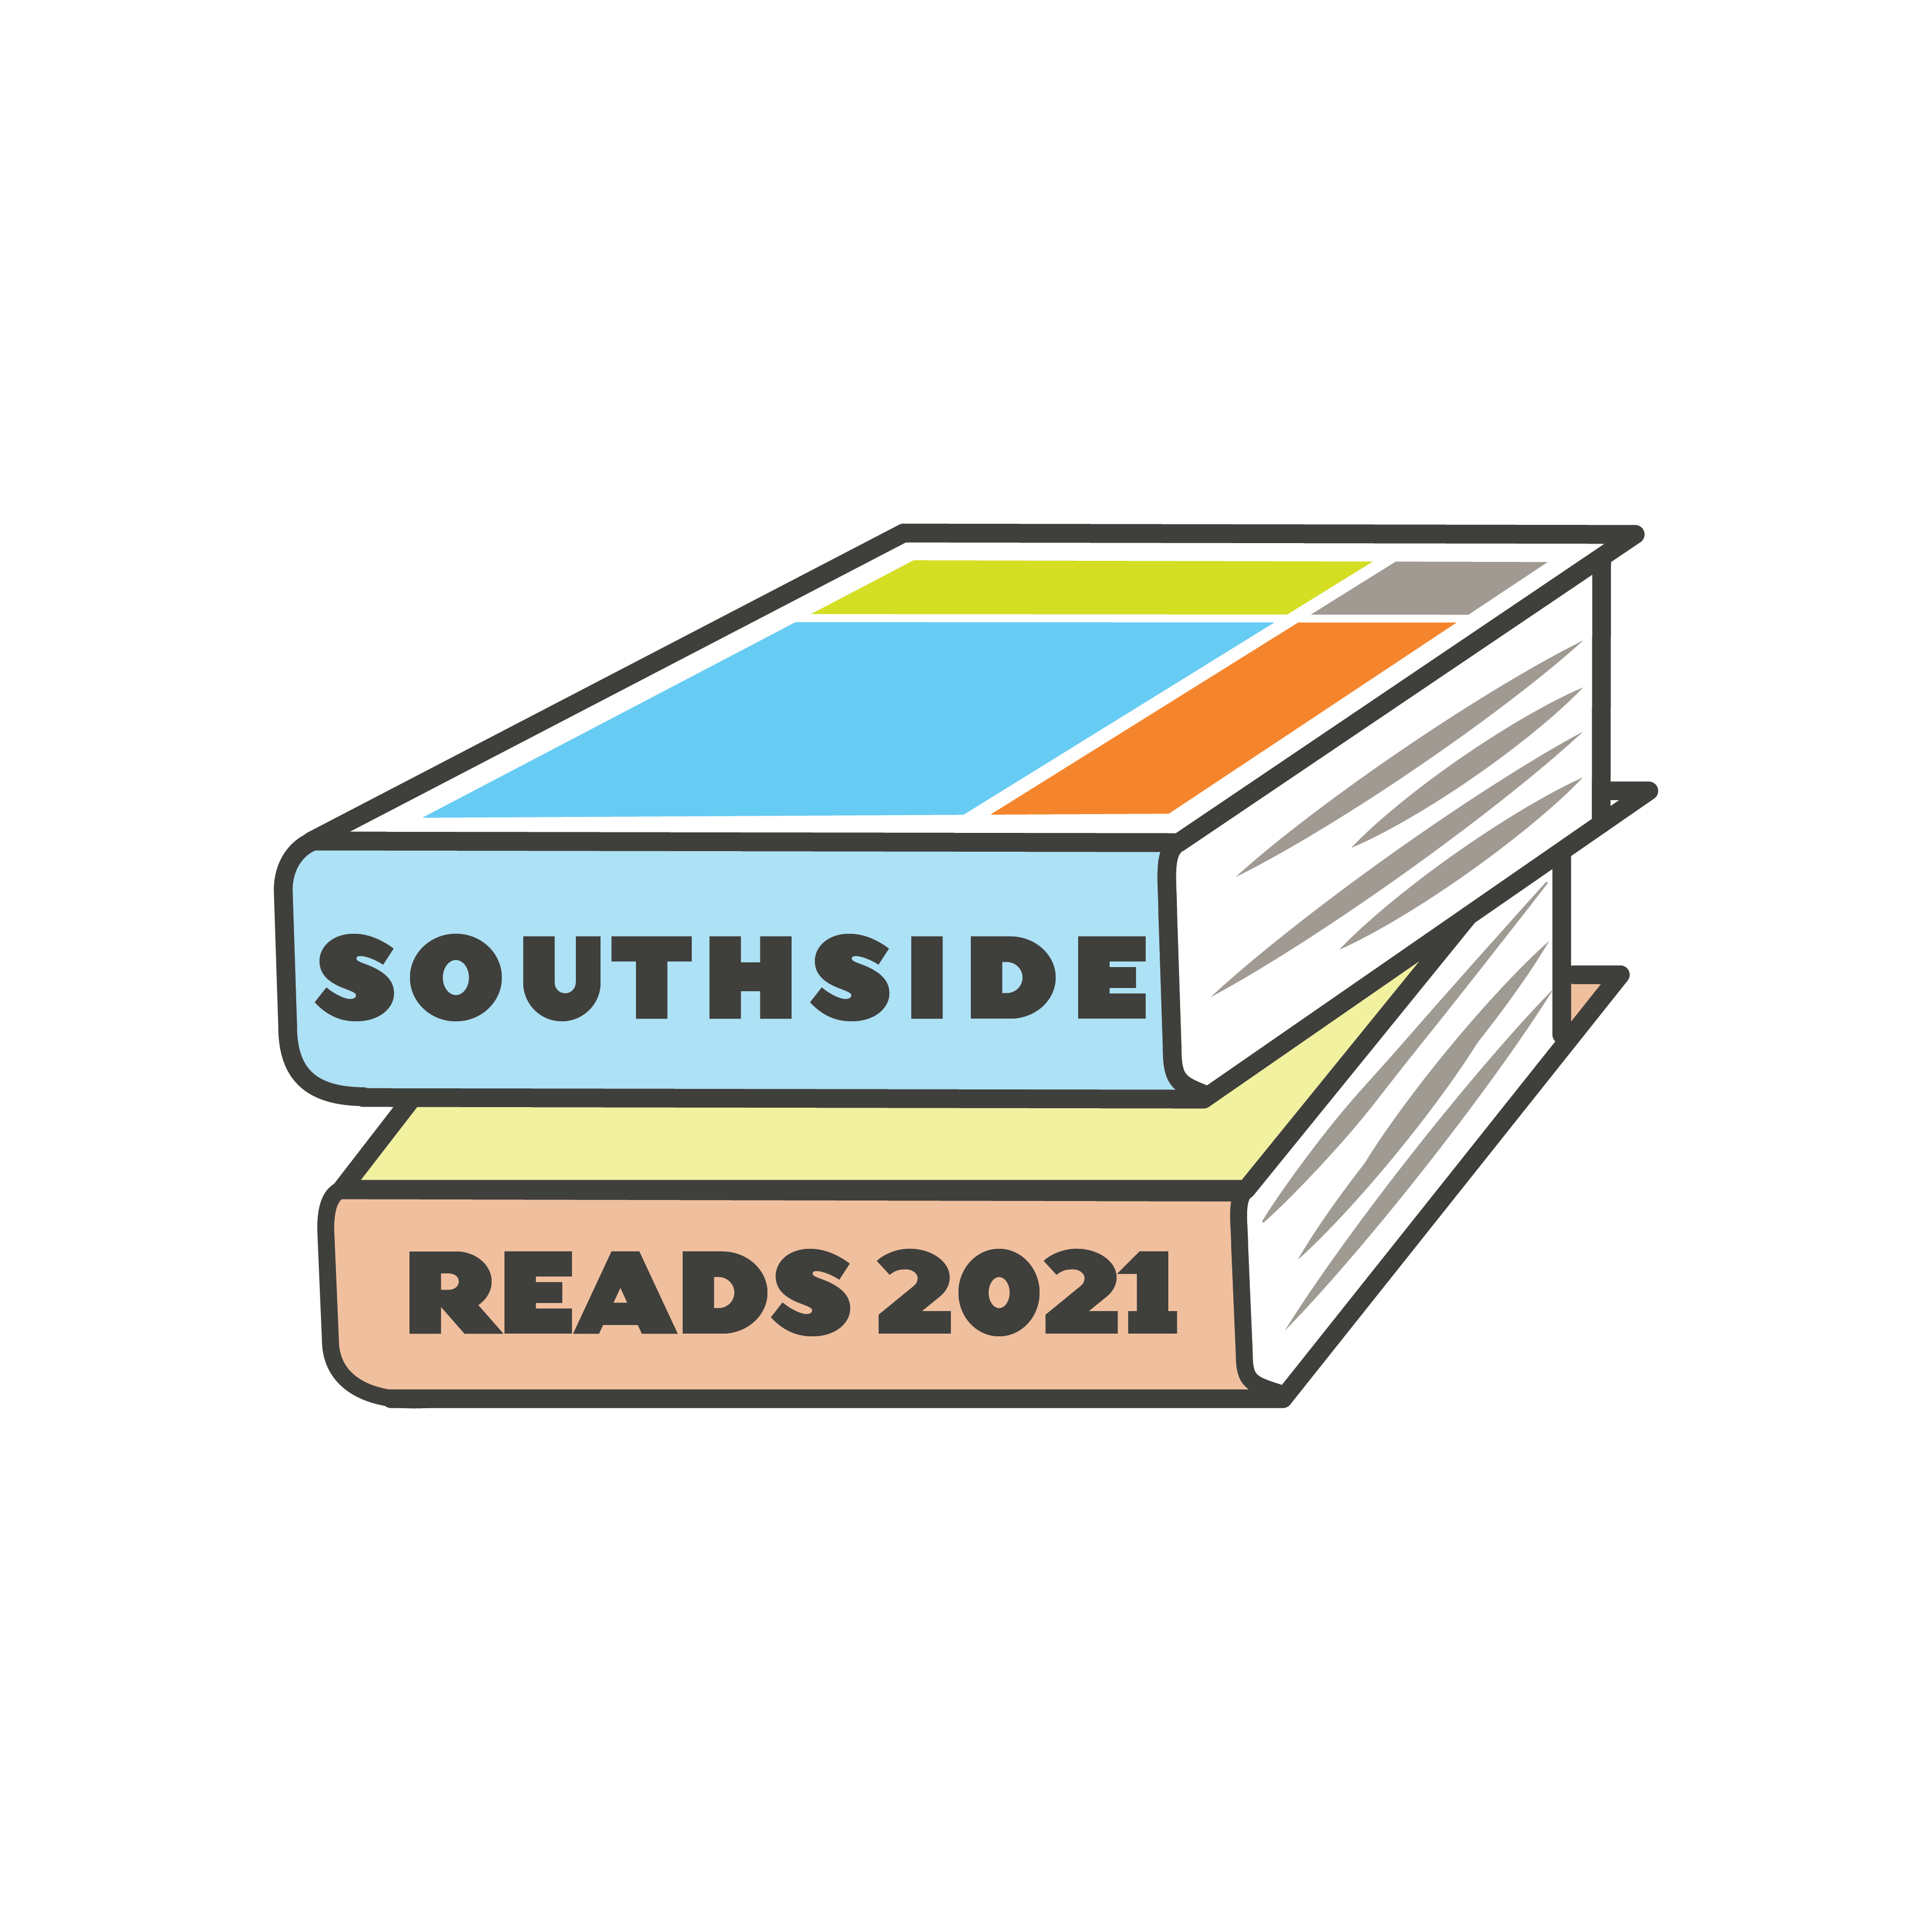 stack of books with Southside Reads 2021 on the spines